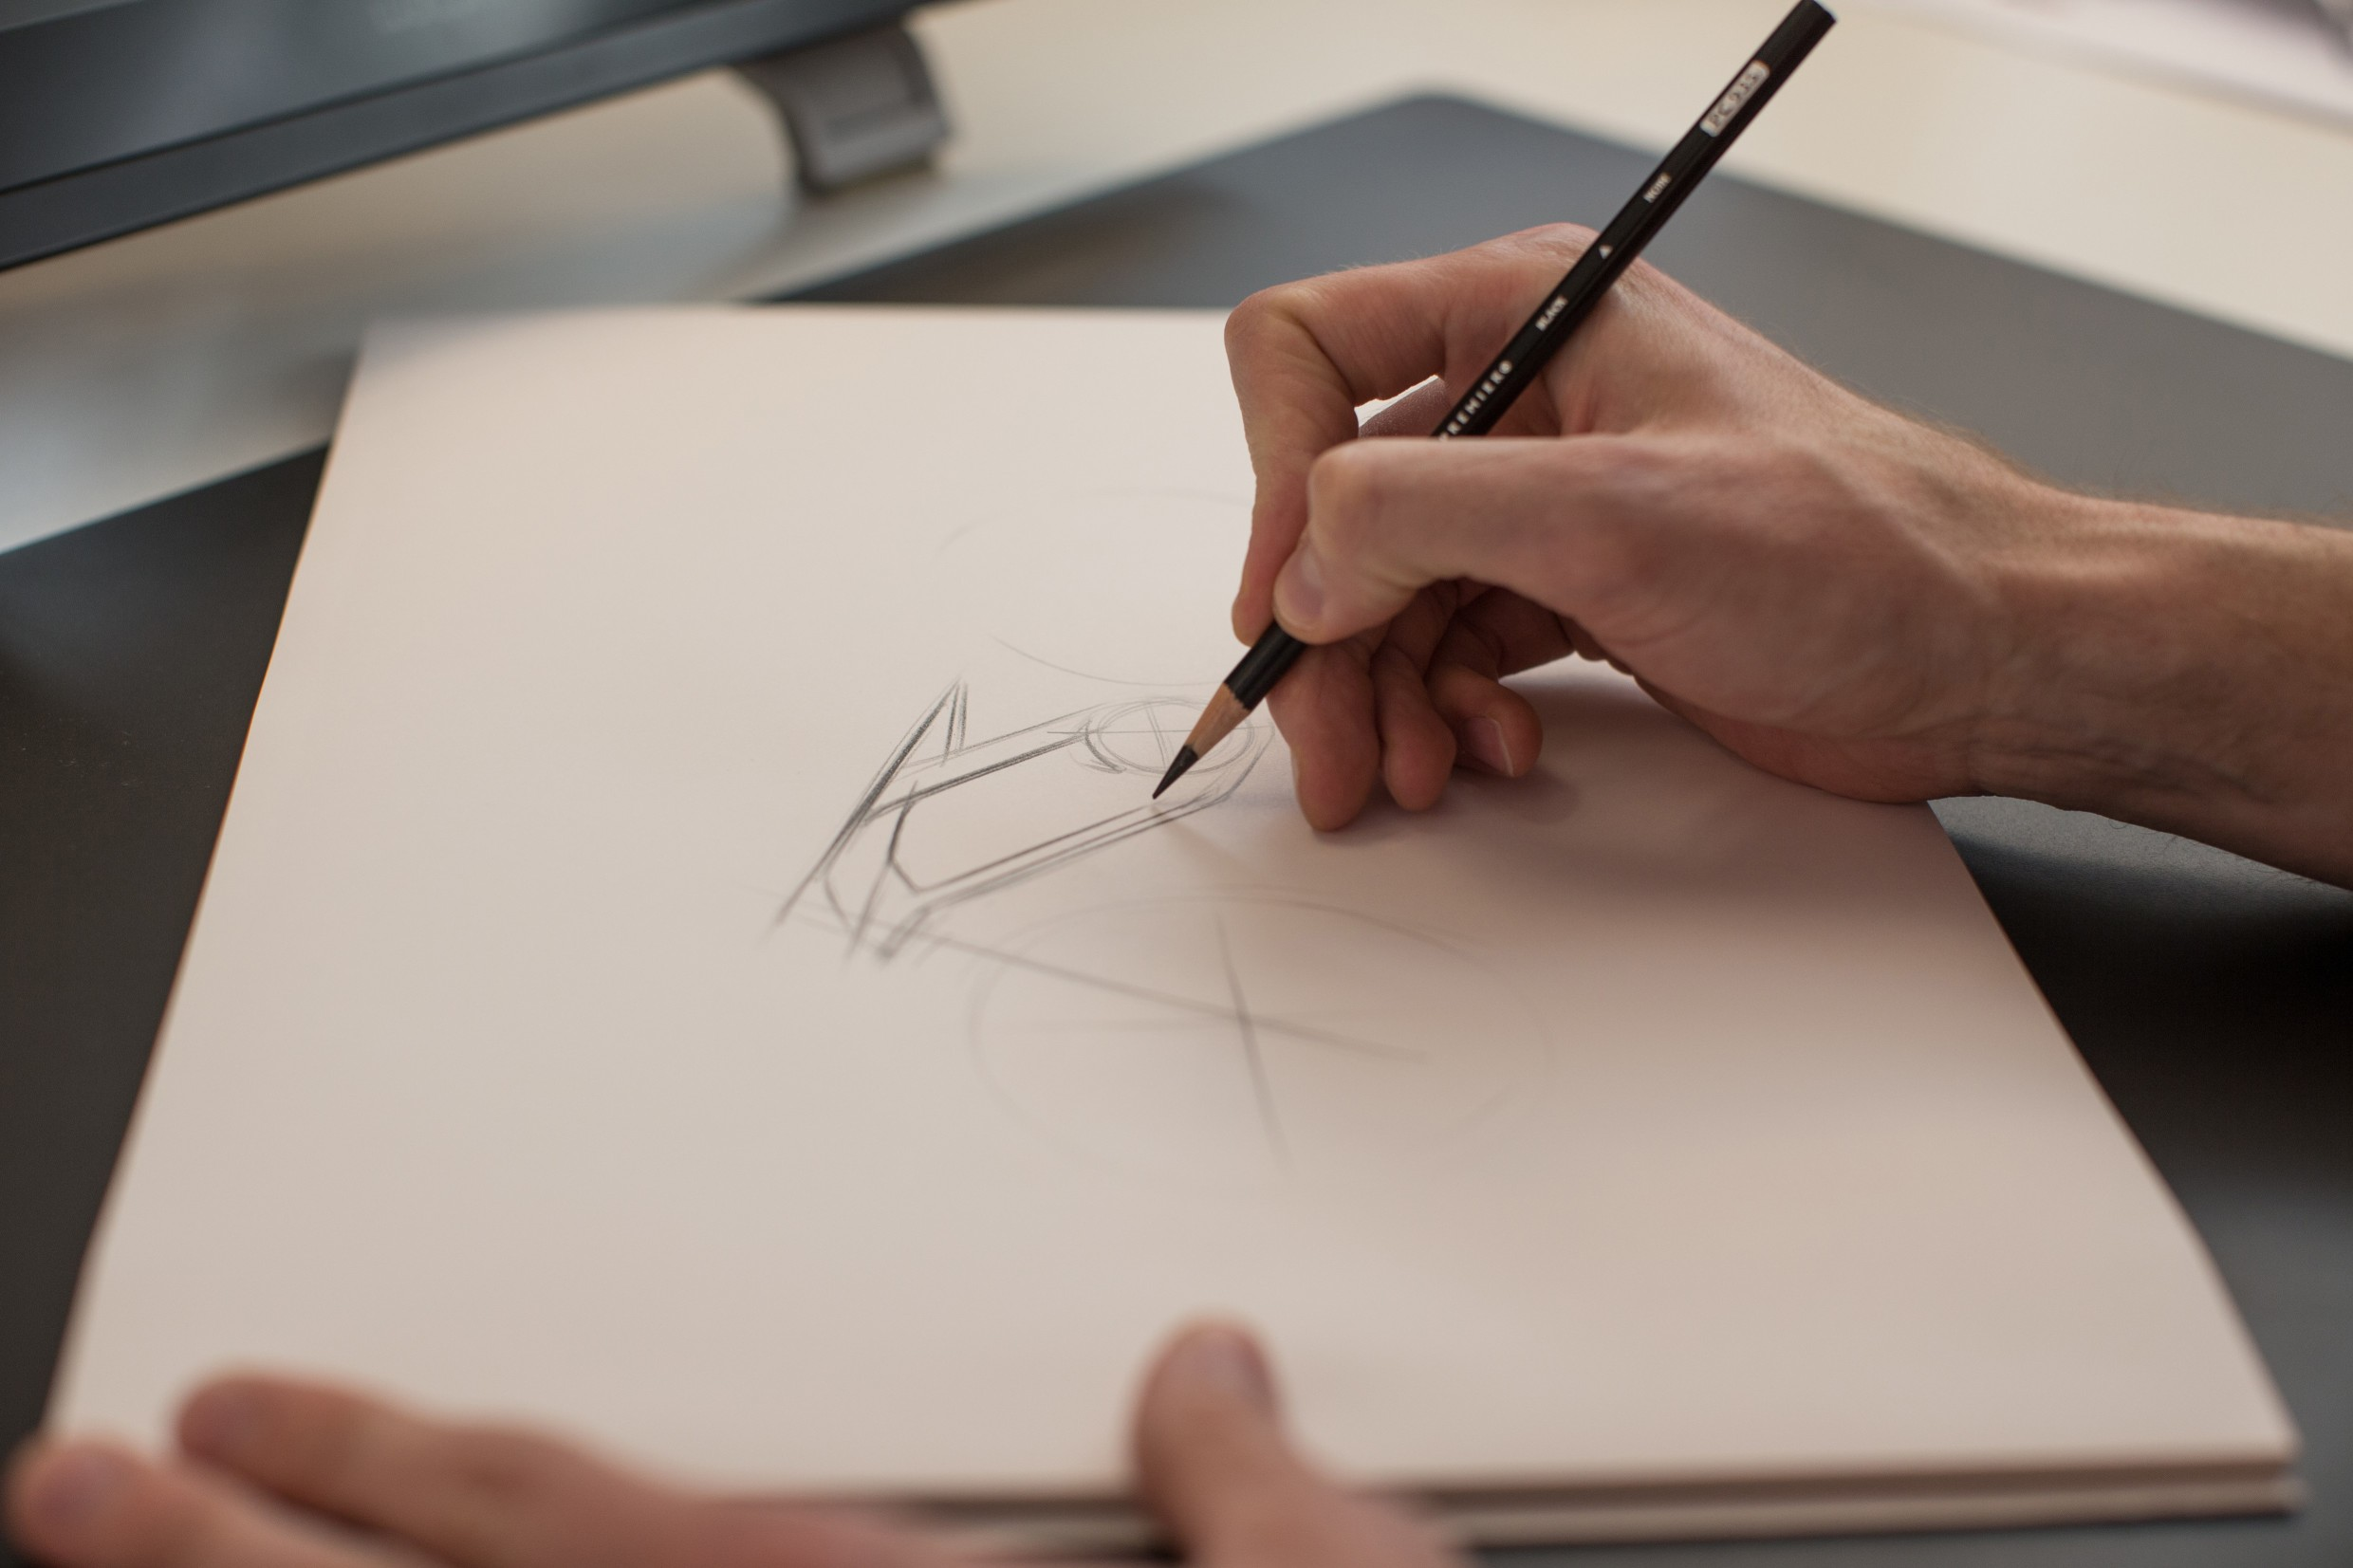 Tour the design laboratory of Audi online with Insight Audi Design medium 1